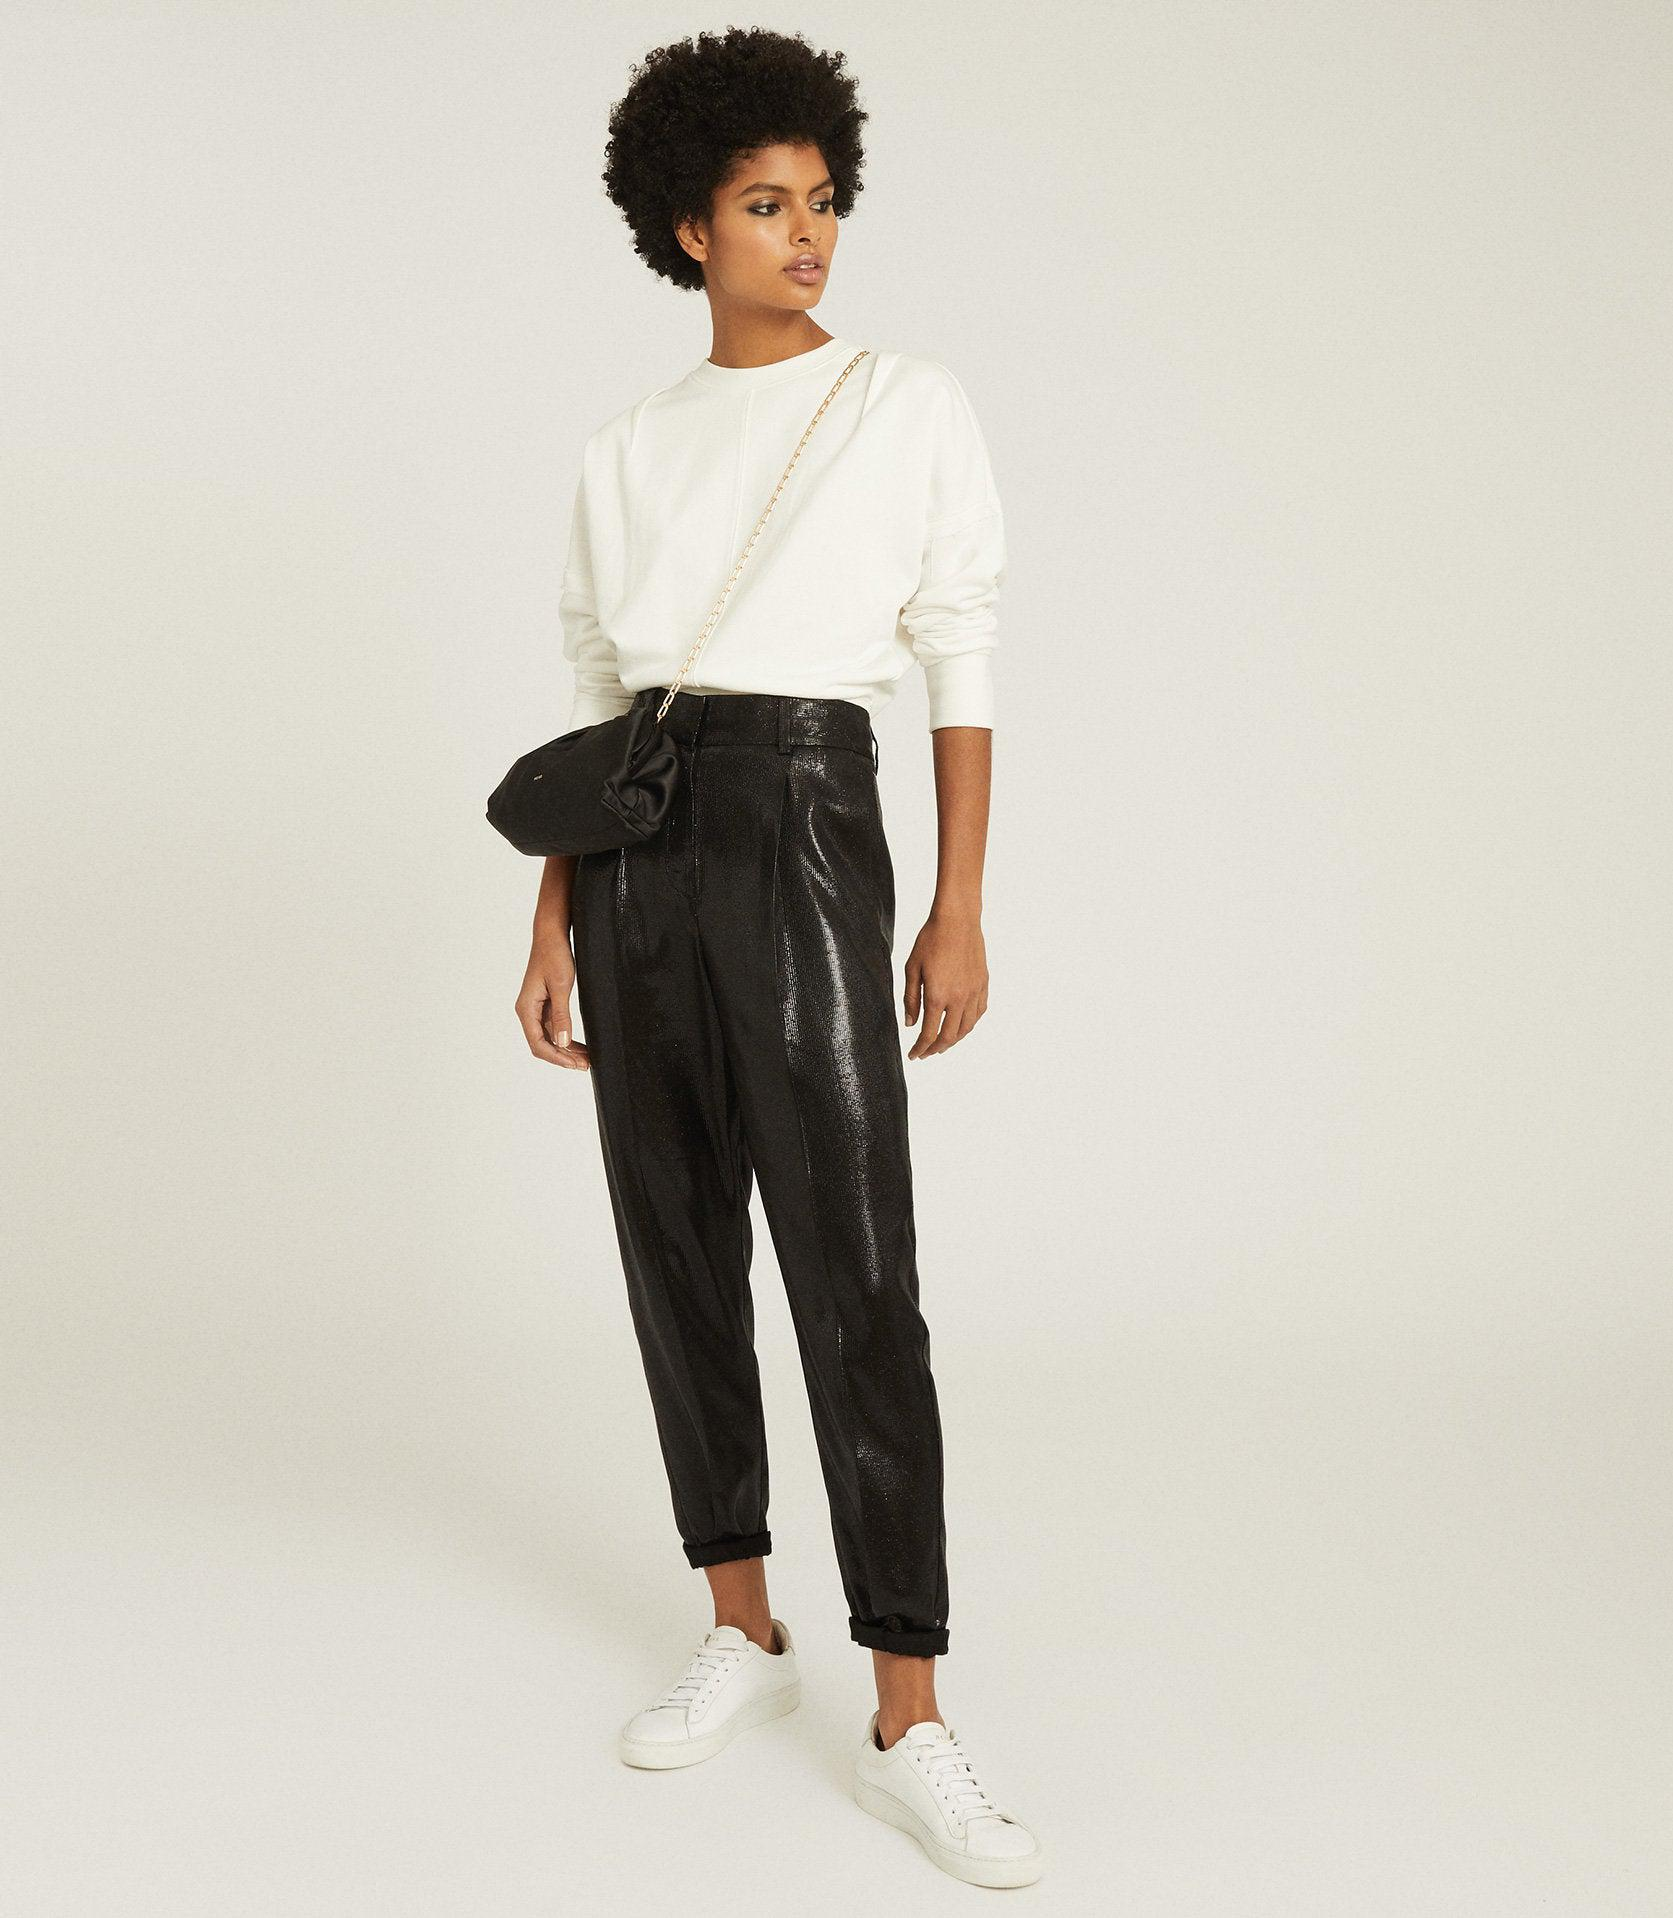 ABBY - HIGH WAISTED SHIMMER TROUSERS